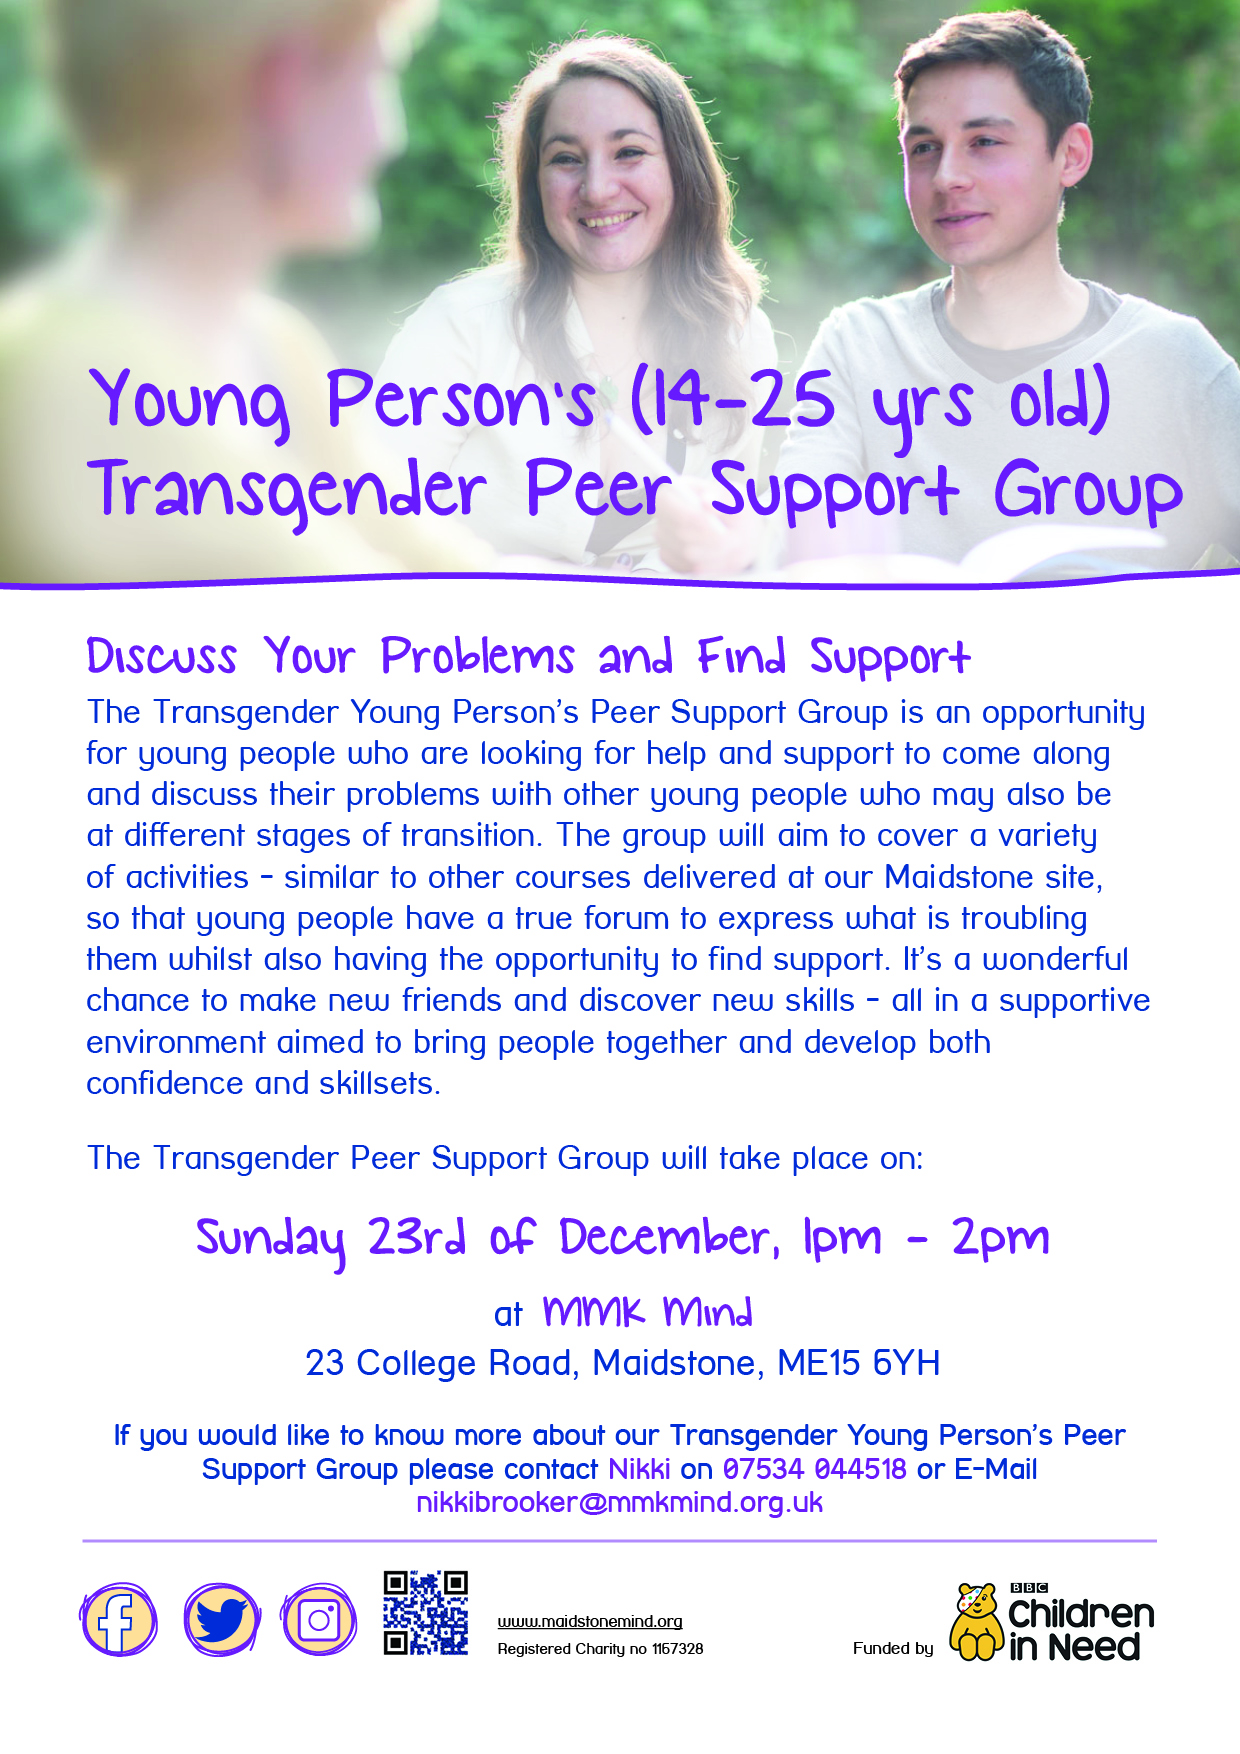 Maidstone Young Person's Trans Group   December 2018 - 14-25 Years Old -Discuss Your Problems and Find Support The Transgender Young Person's Peer Support Group is an opportunity for young people who are looking for help and support to come along and discuss their problems with other young people who may also be at different stages of transition. The group will aim to cover a variety of activities - similar to other courses delivered at our Maidstone site, so that young people have a true forum to express what is troubling them whilst also having the opportunity to find support. It's a wonderful chance to make new friends and discover new skills - all in a supportive environment aimed to bring people together and develop both confidence and skillsets. The Transgender Peer Support Group will take place on: Sunday 23rd of December, 1pm - 2pm at MMK Mind 23 College Road, Maidstone, ME15 6YH. If you would like to know more about our Transgender Young Person's Peer Support Group please contact Nikki on 07534 044518 or E-Mail  nikkibrooker@mmkmind.org.uk